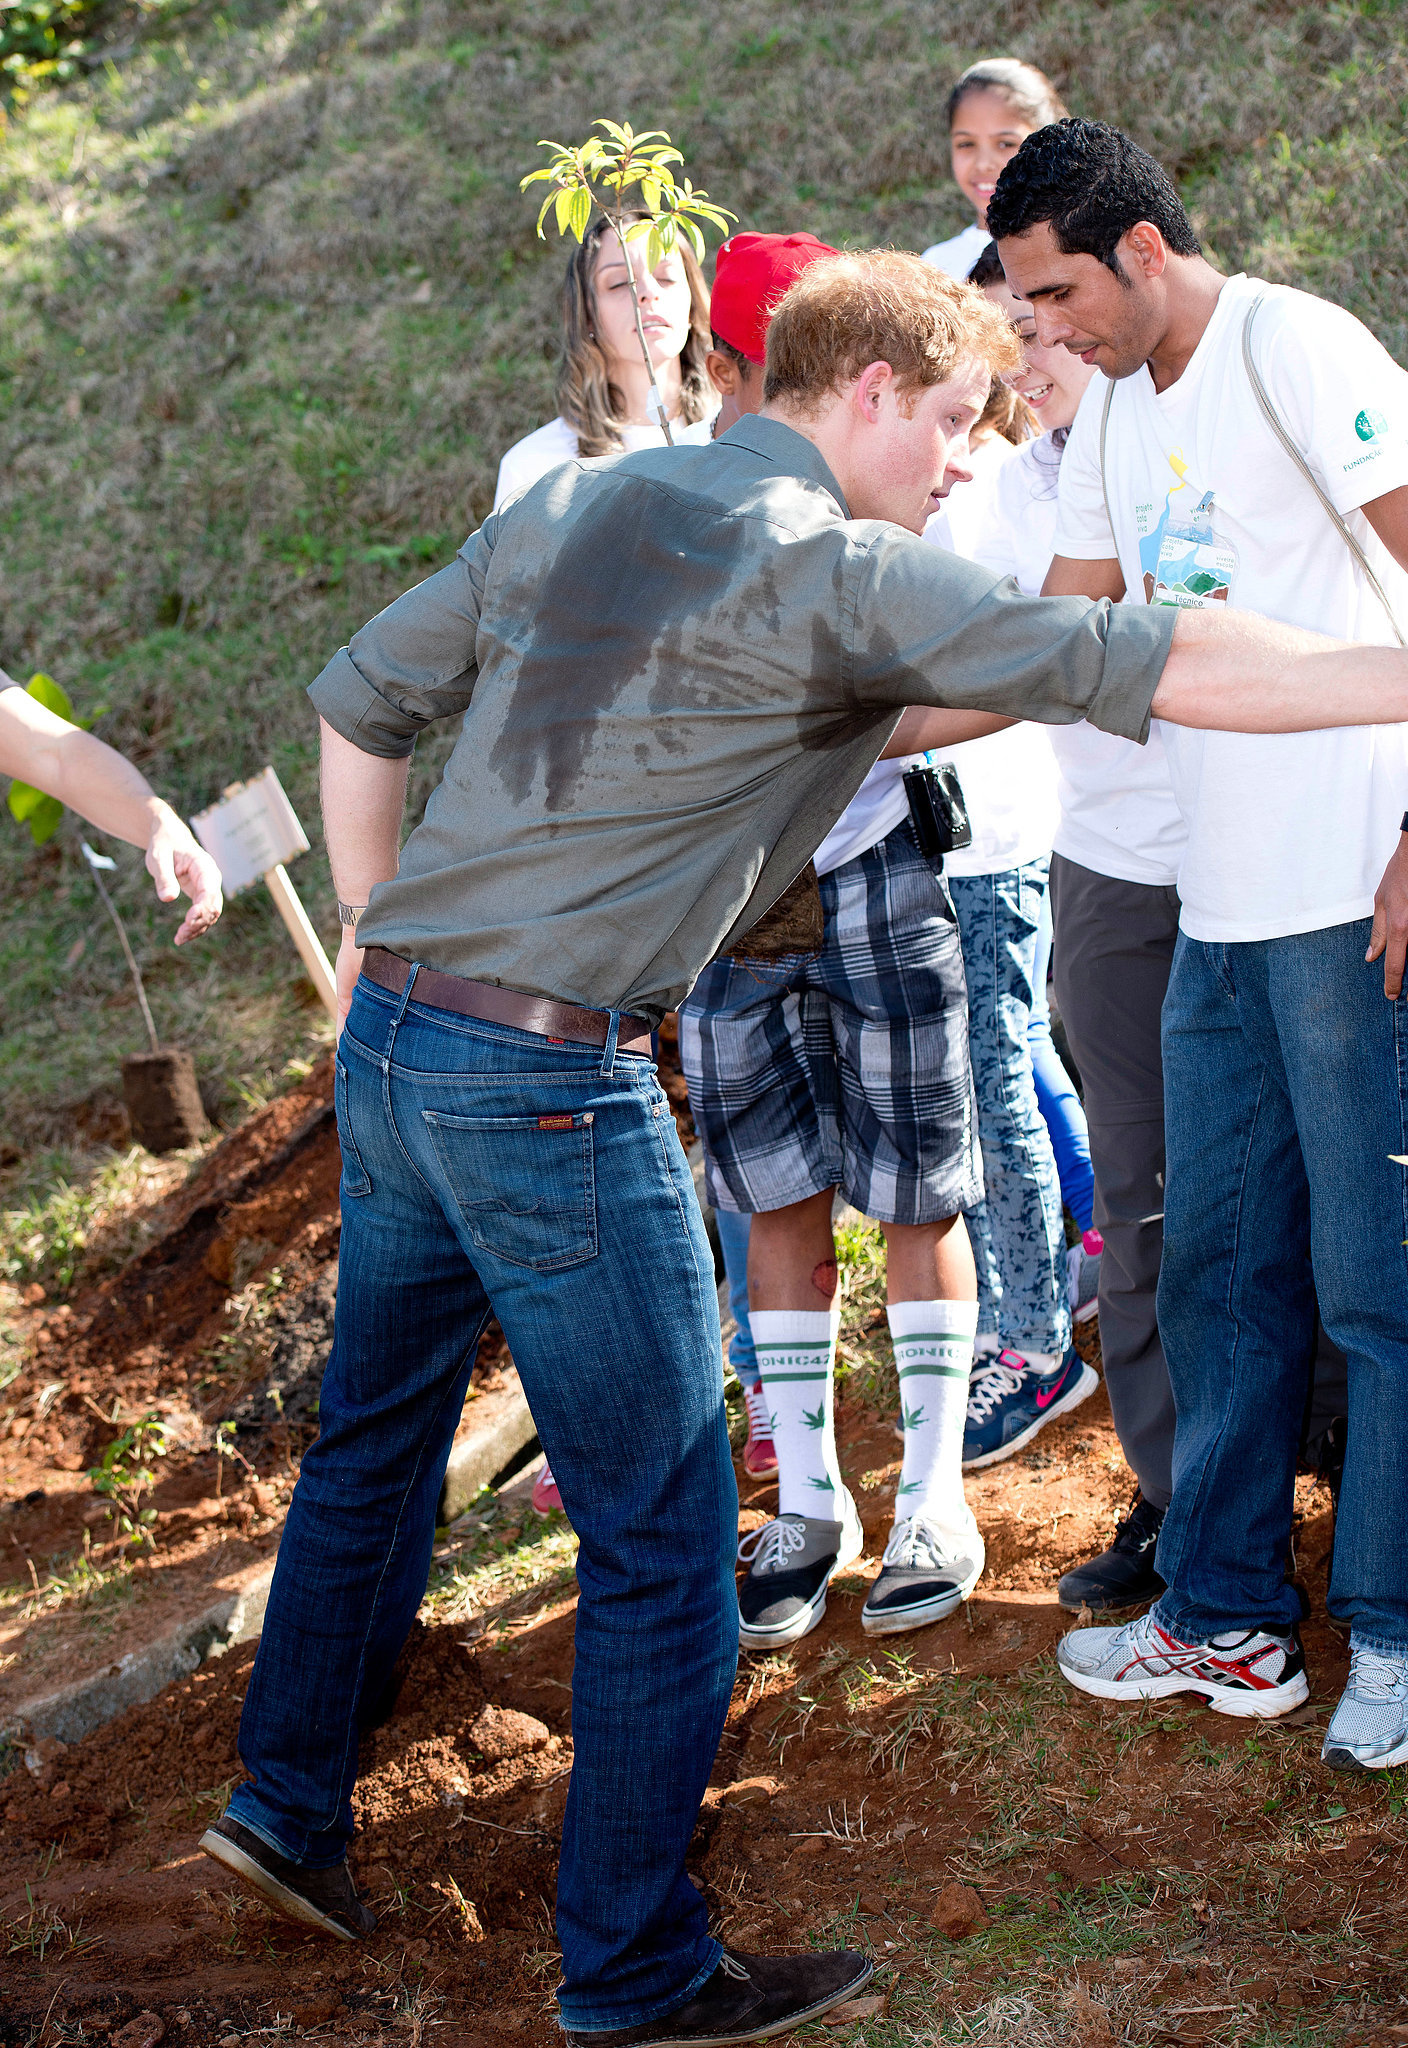 When He Was Forced to Do Manual Labor